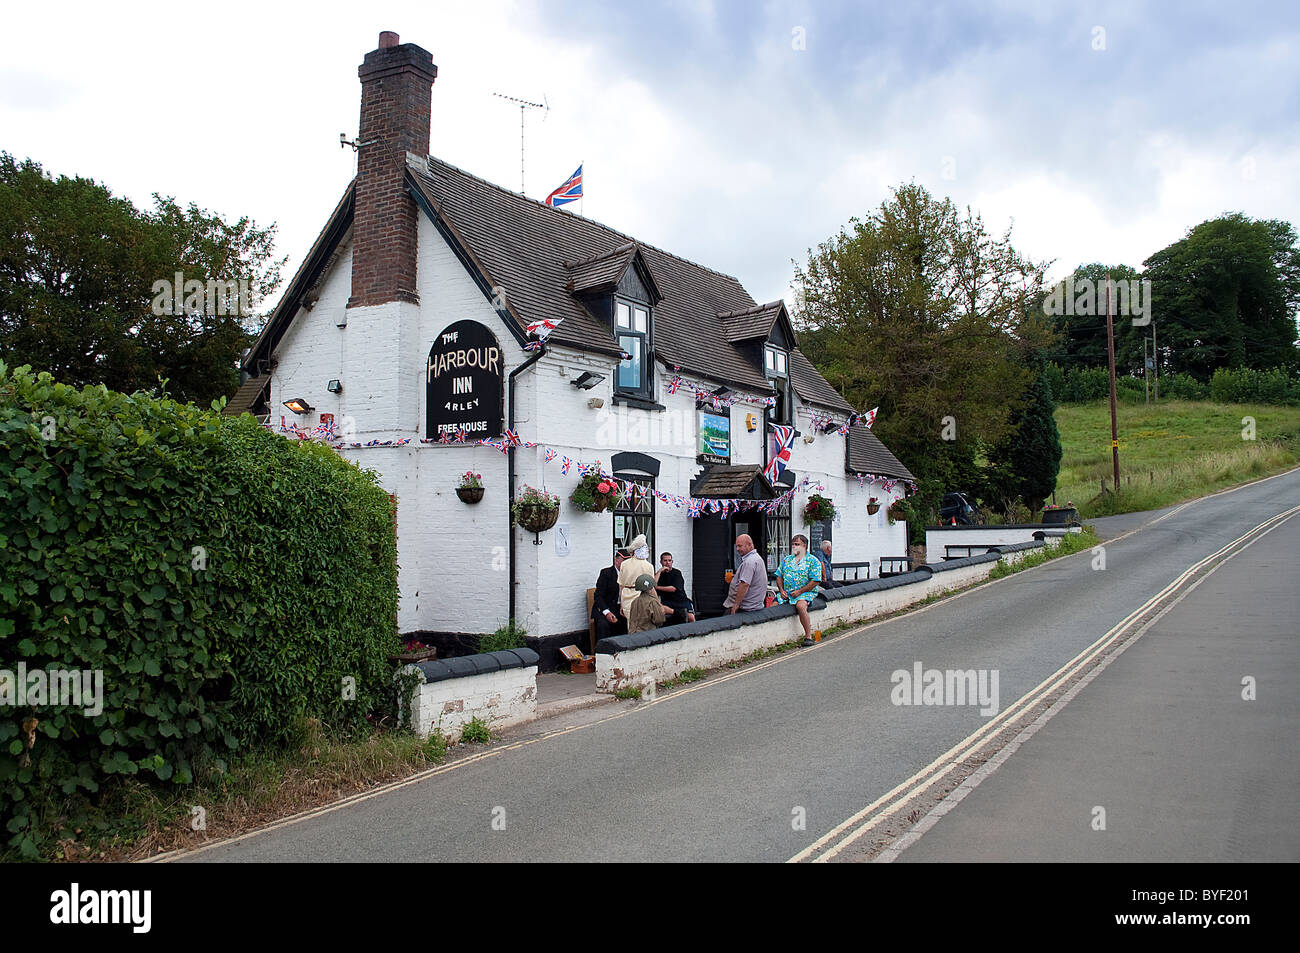 The Harbour Inn Public House next to the Severn Valley railway station at Arley, Bewdley, Worcestershire, UK - Stock Image